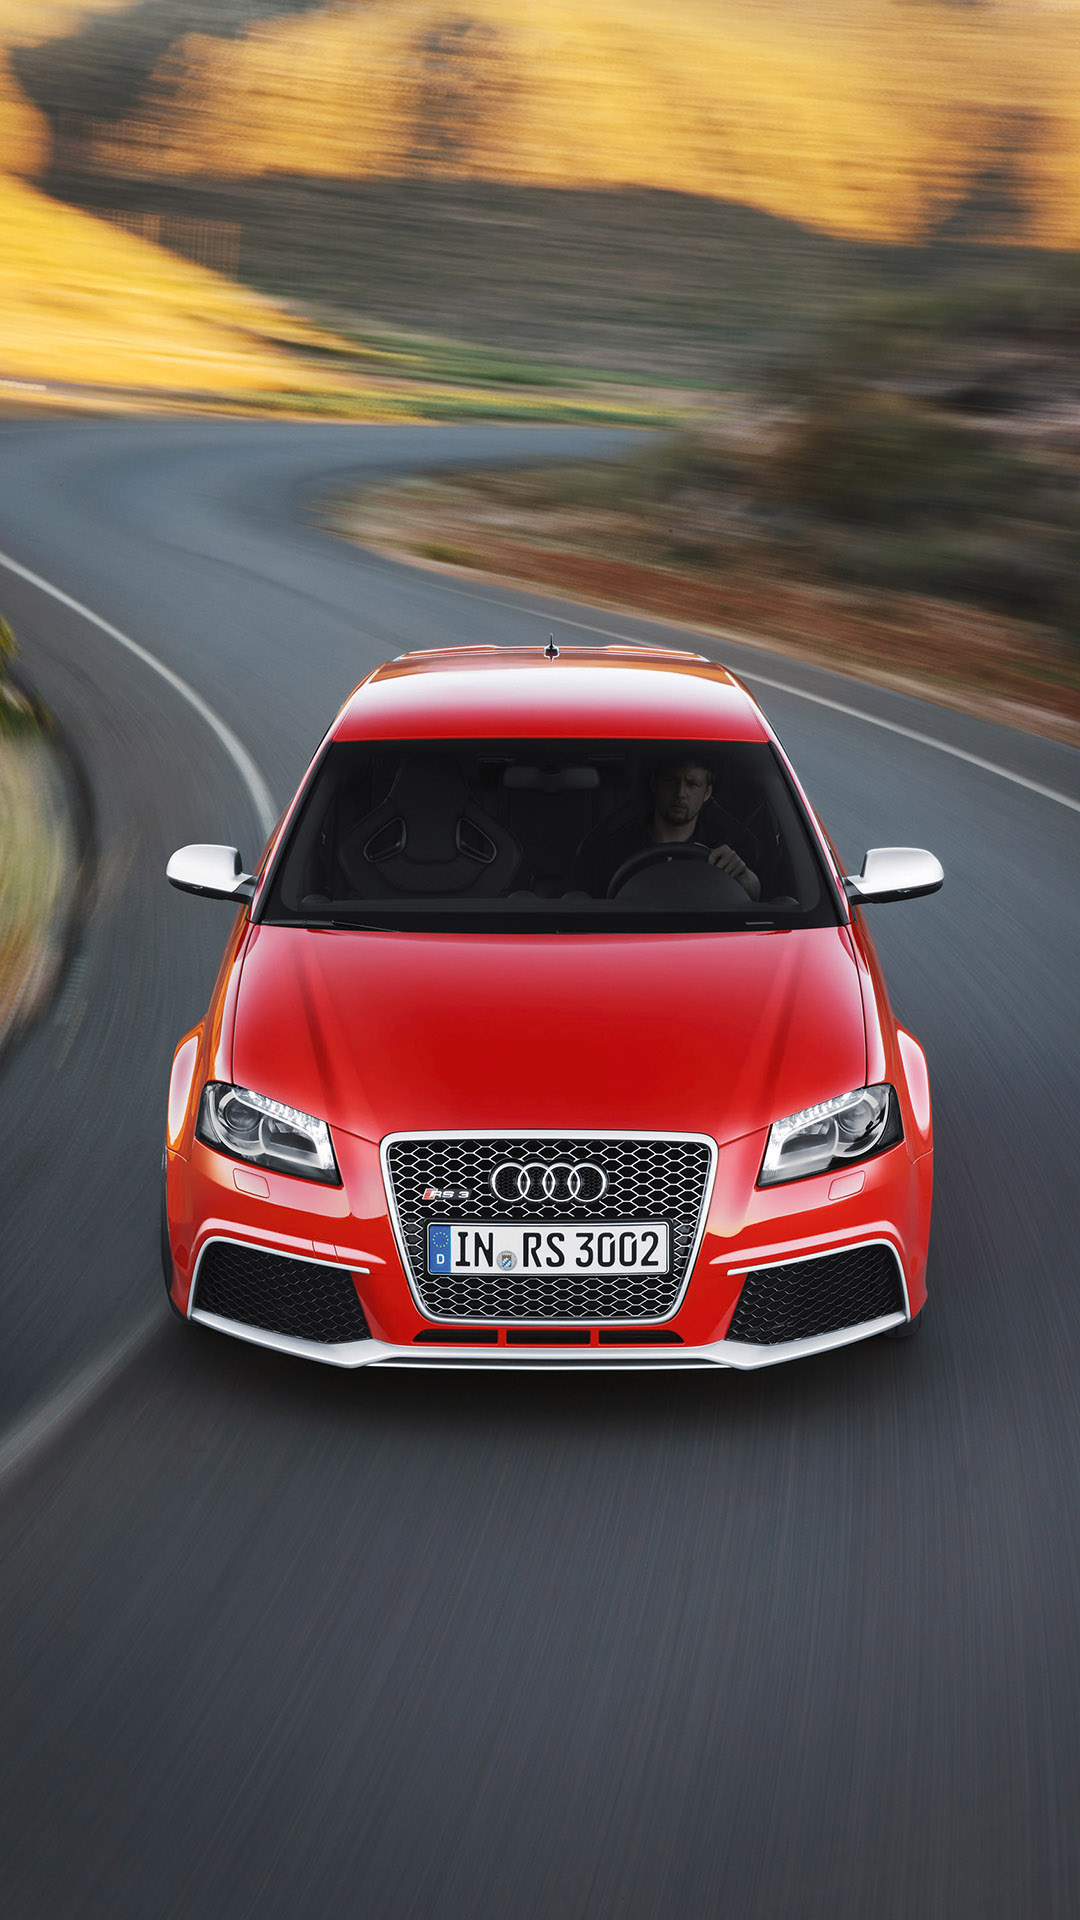 audi rs 3 sportback - best htc one wallpapers, free and easy to download